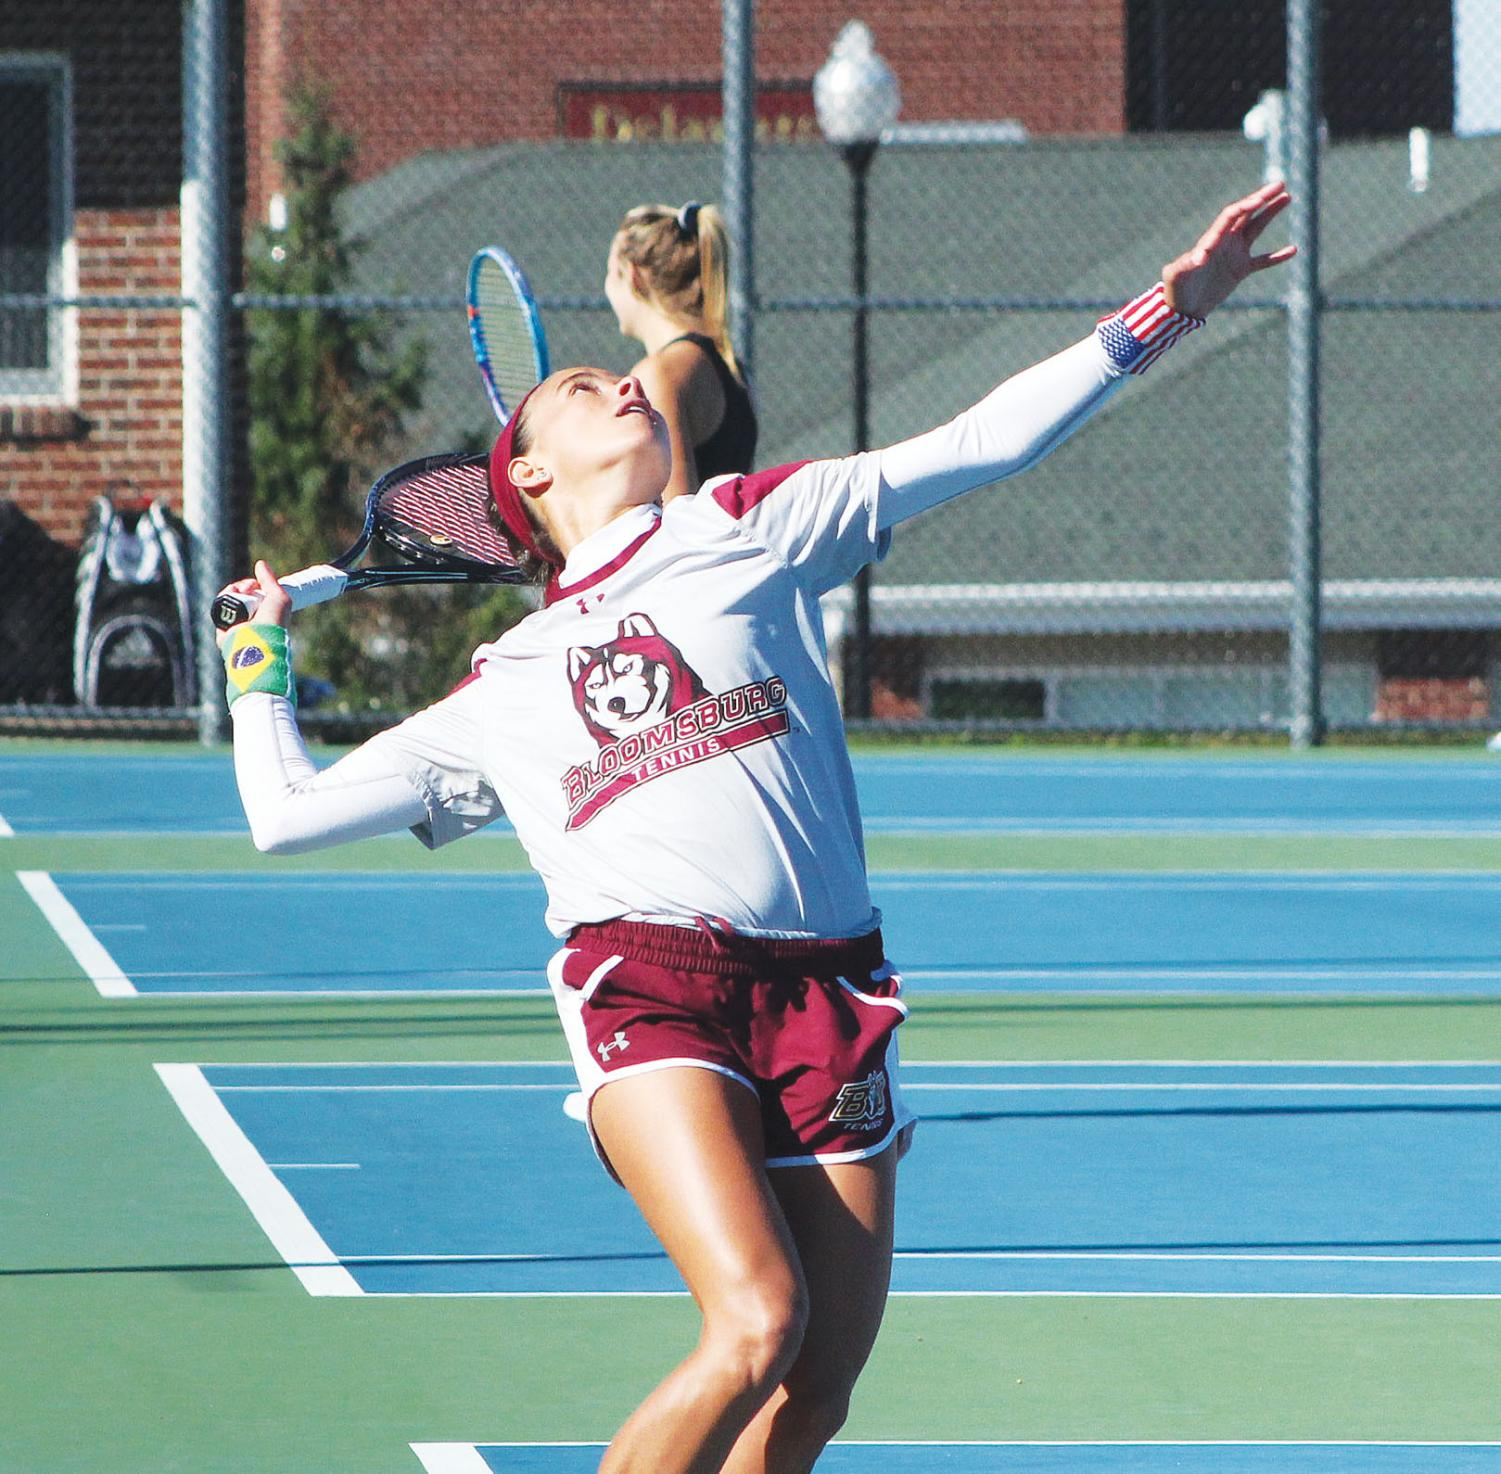 The women's tennis team will play again at home this Friday against Clarion University.